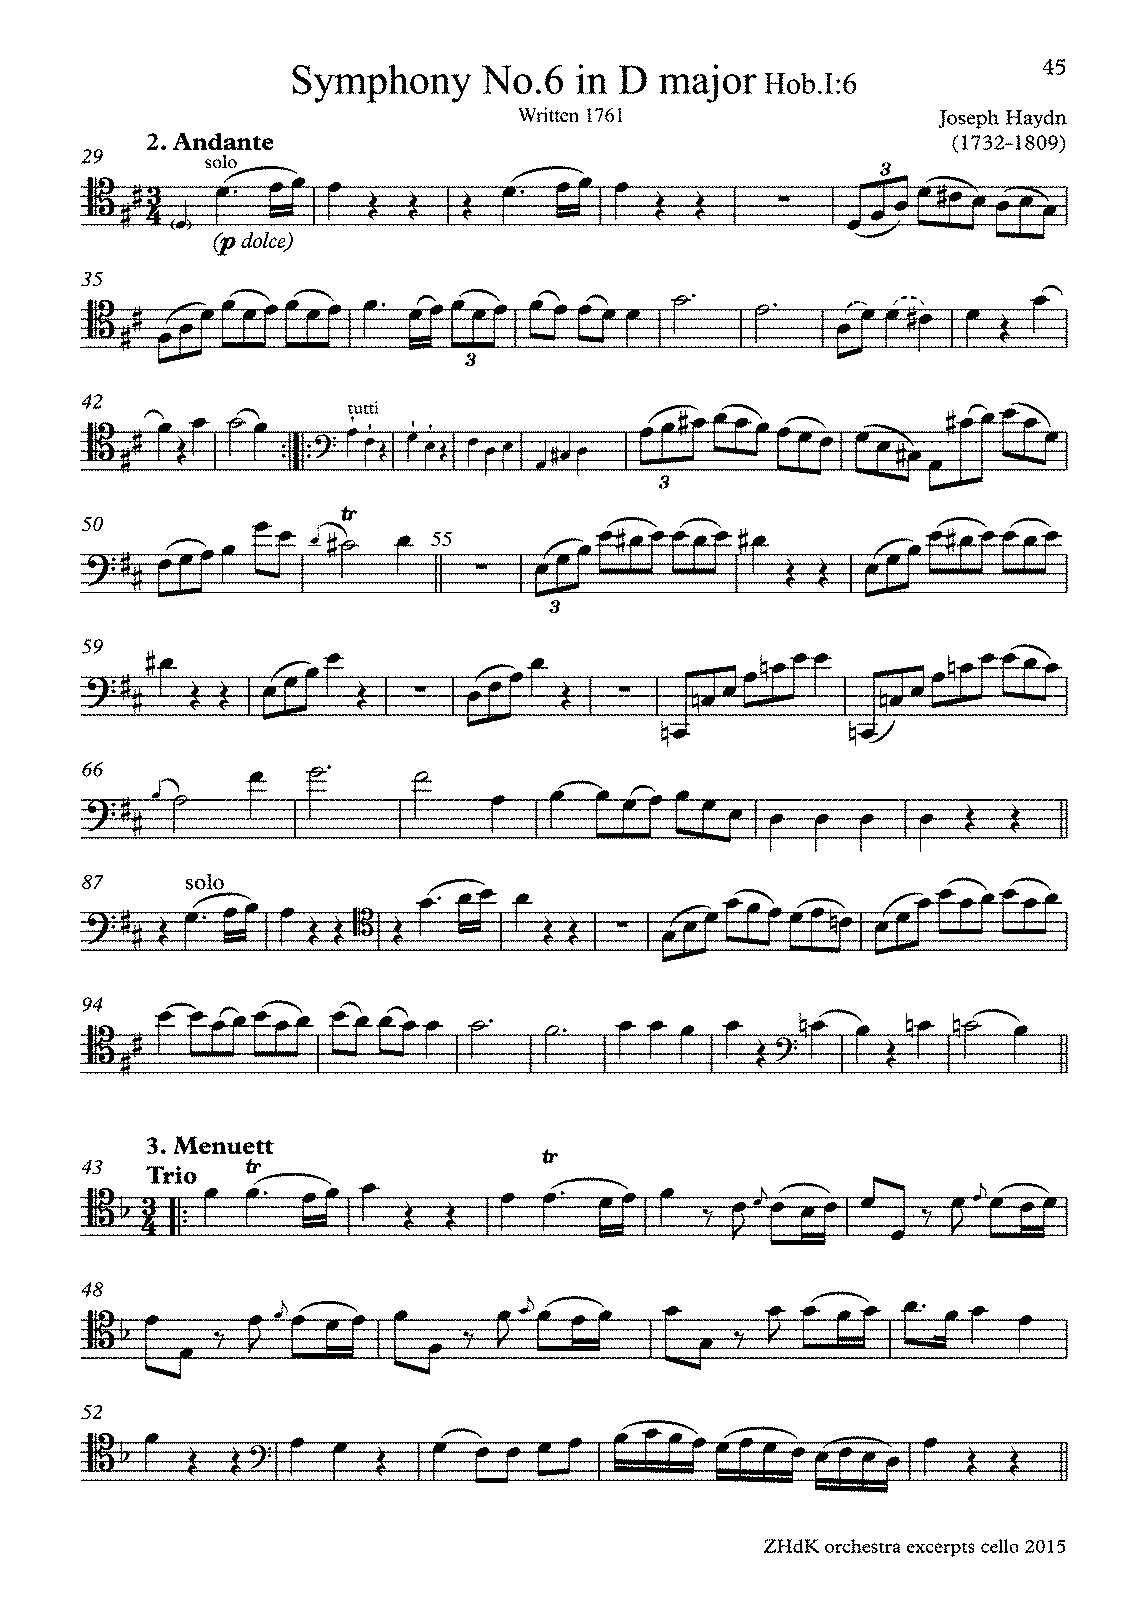 PMLP71273-Haydn Symph 6 Cello expts Mandozzi.pdf